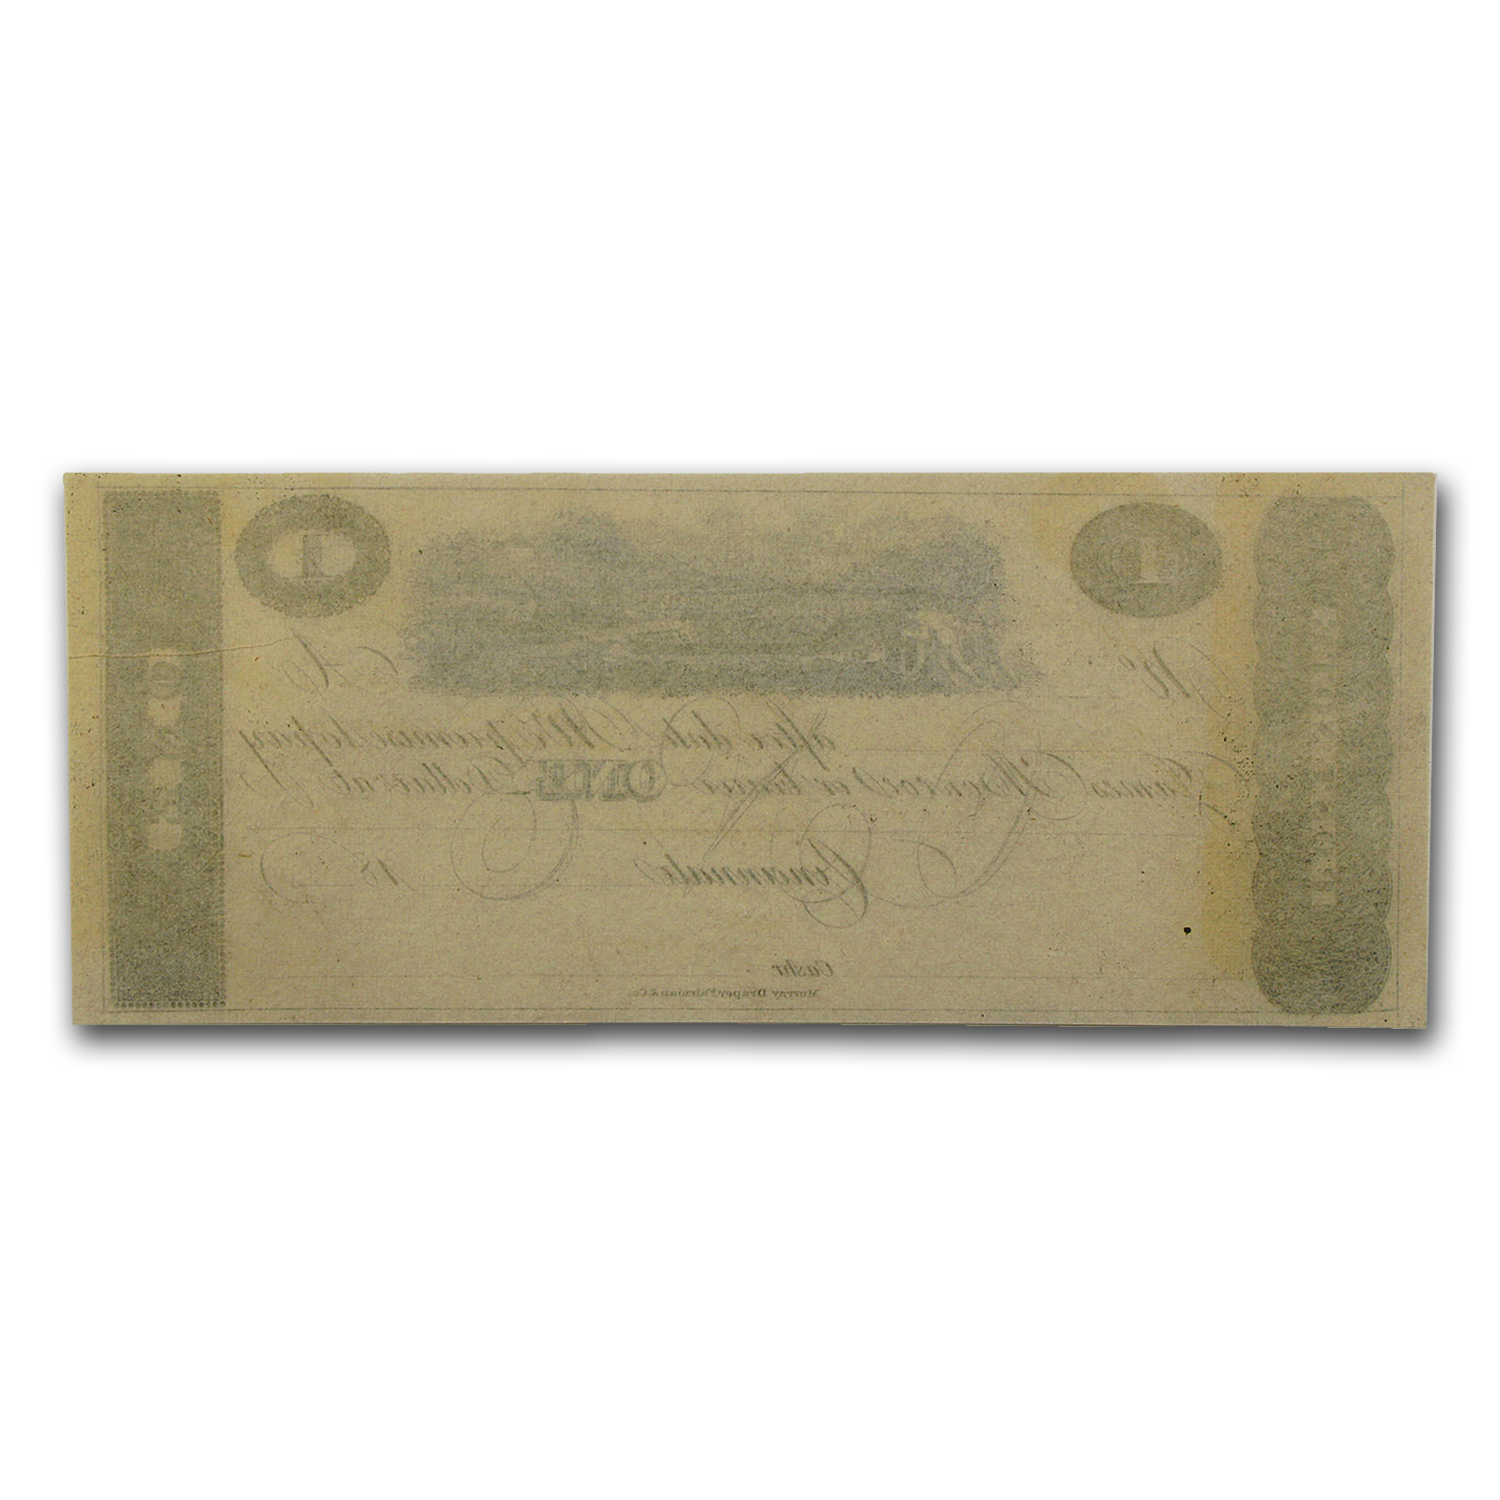 18__ Post Note from Cincinnati, OH $1.00 AU